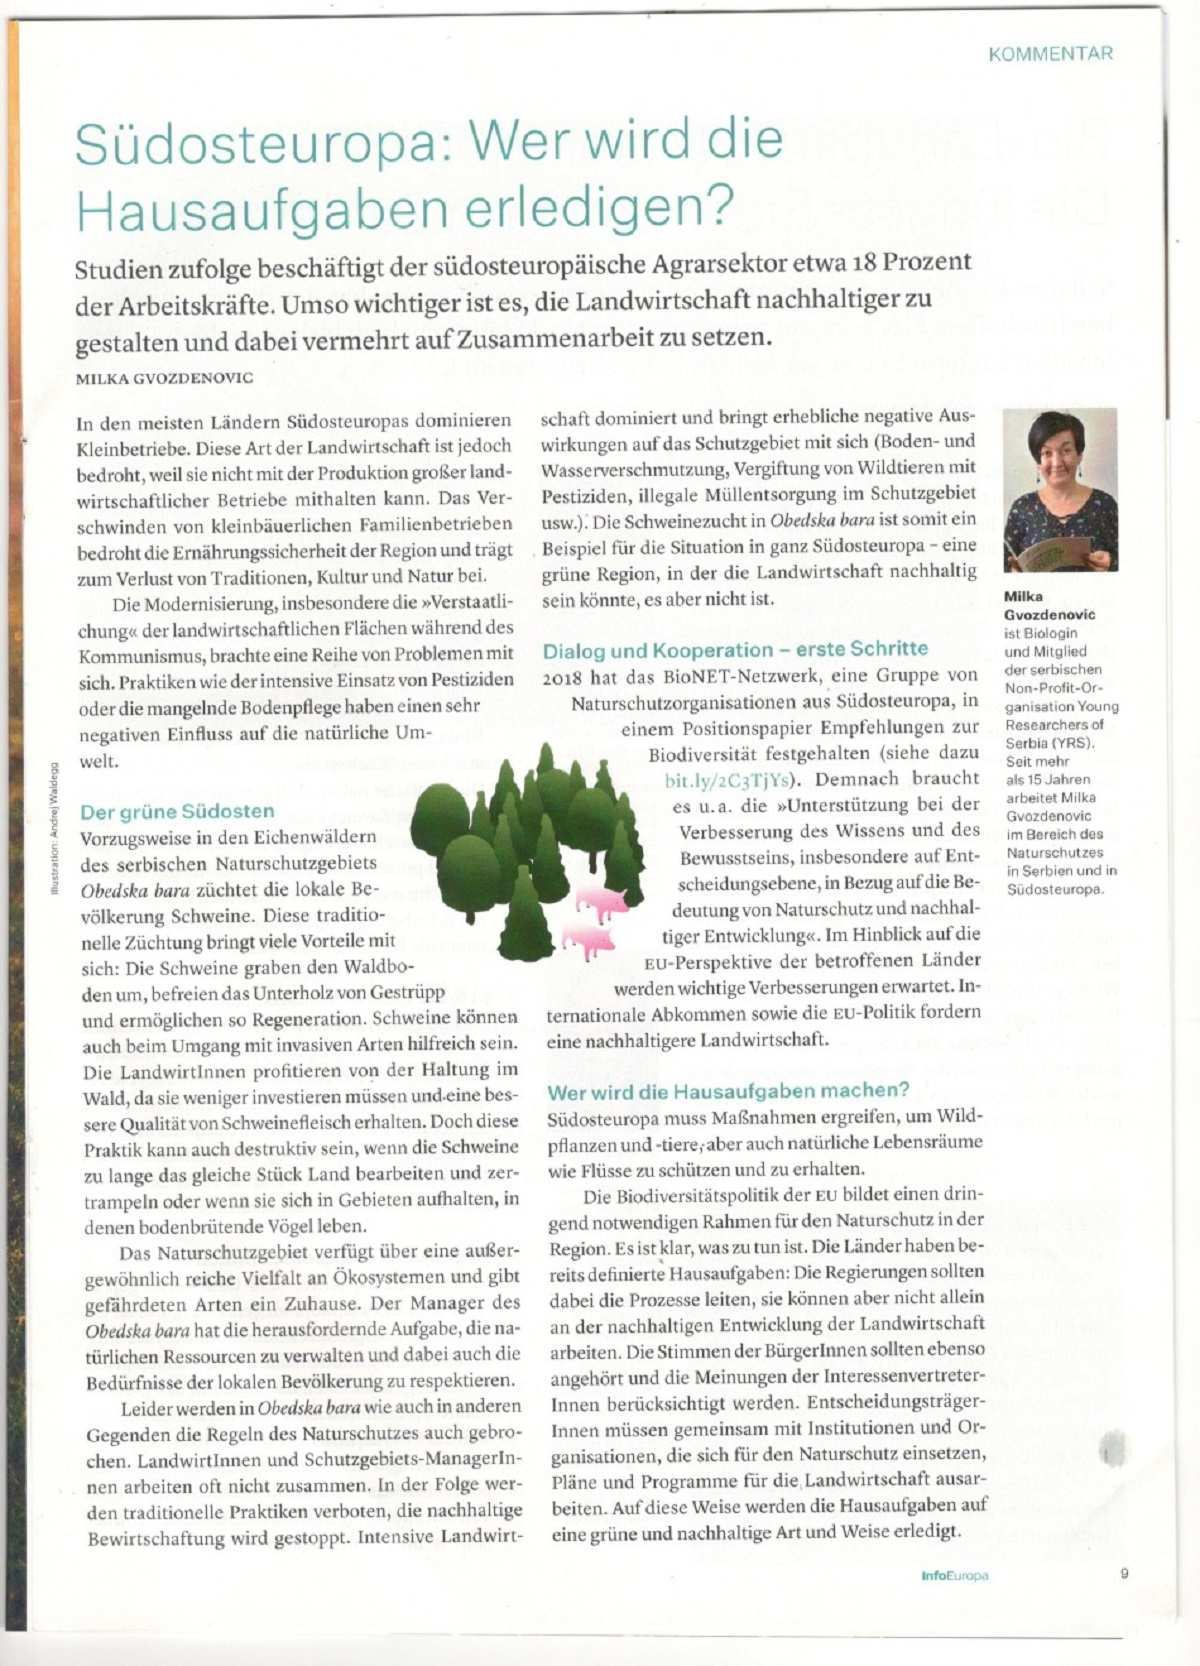 Obedska Bara As An Example Of Sustainable Agriculture An Article Published In Info Europa Die Presse Mladi Istrazhivachi Srbiјe